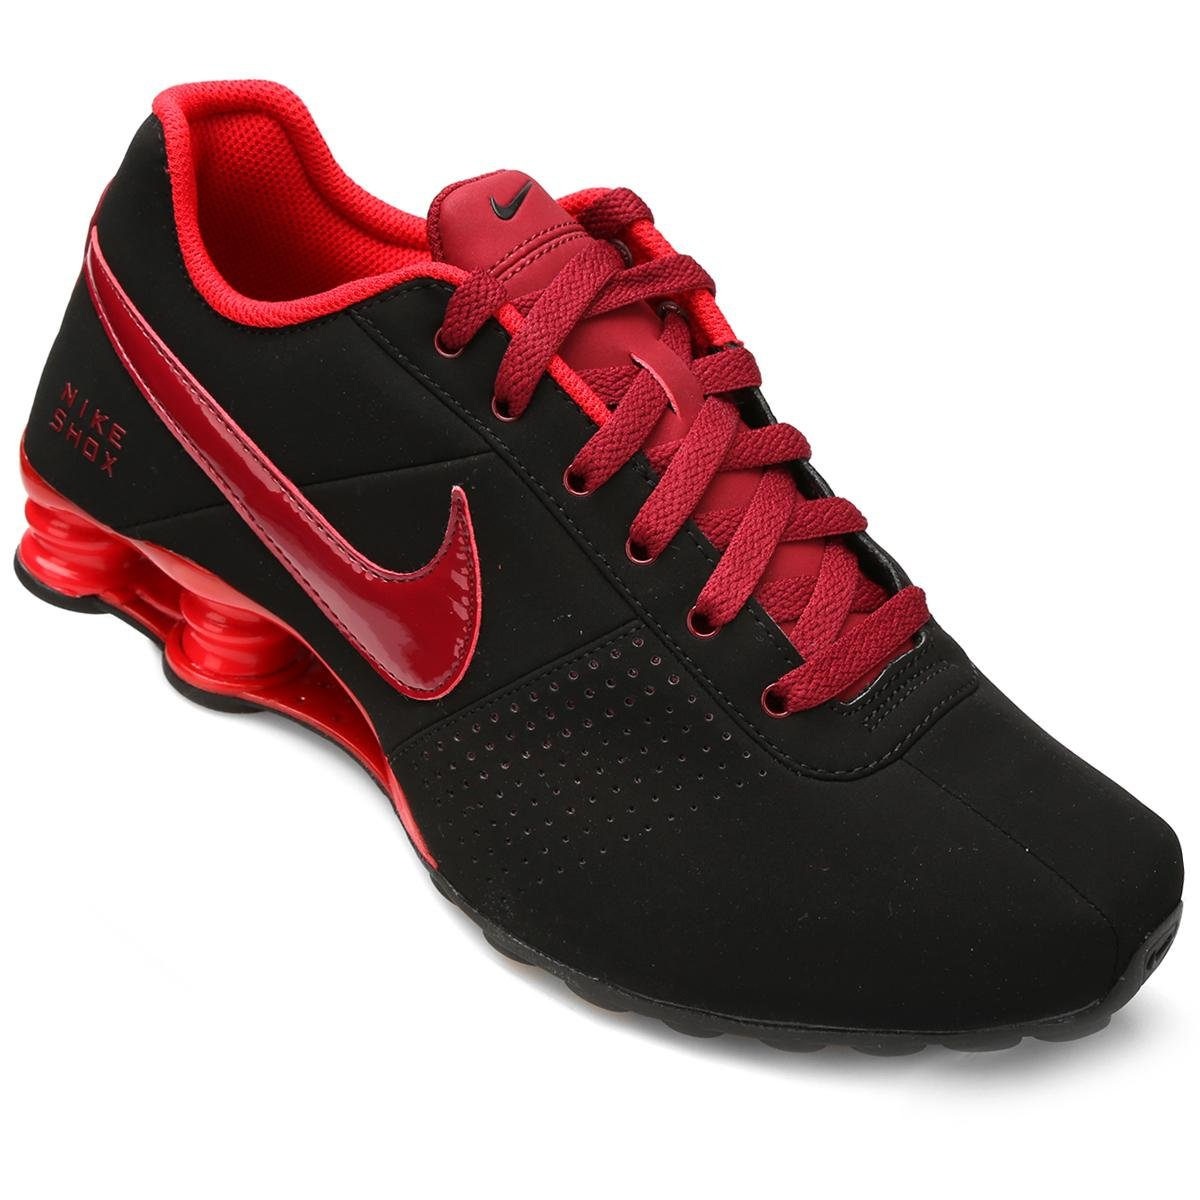 347cf512ce8 ... purchase tênis nike shox deliver vermelho tênis nike shox deliver  vermelho escuro e . ...